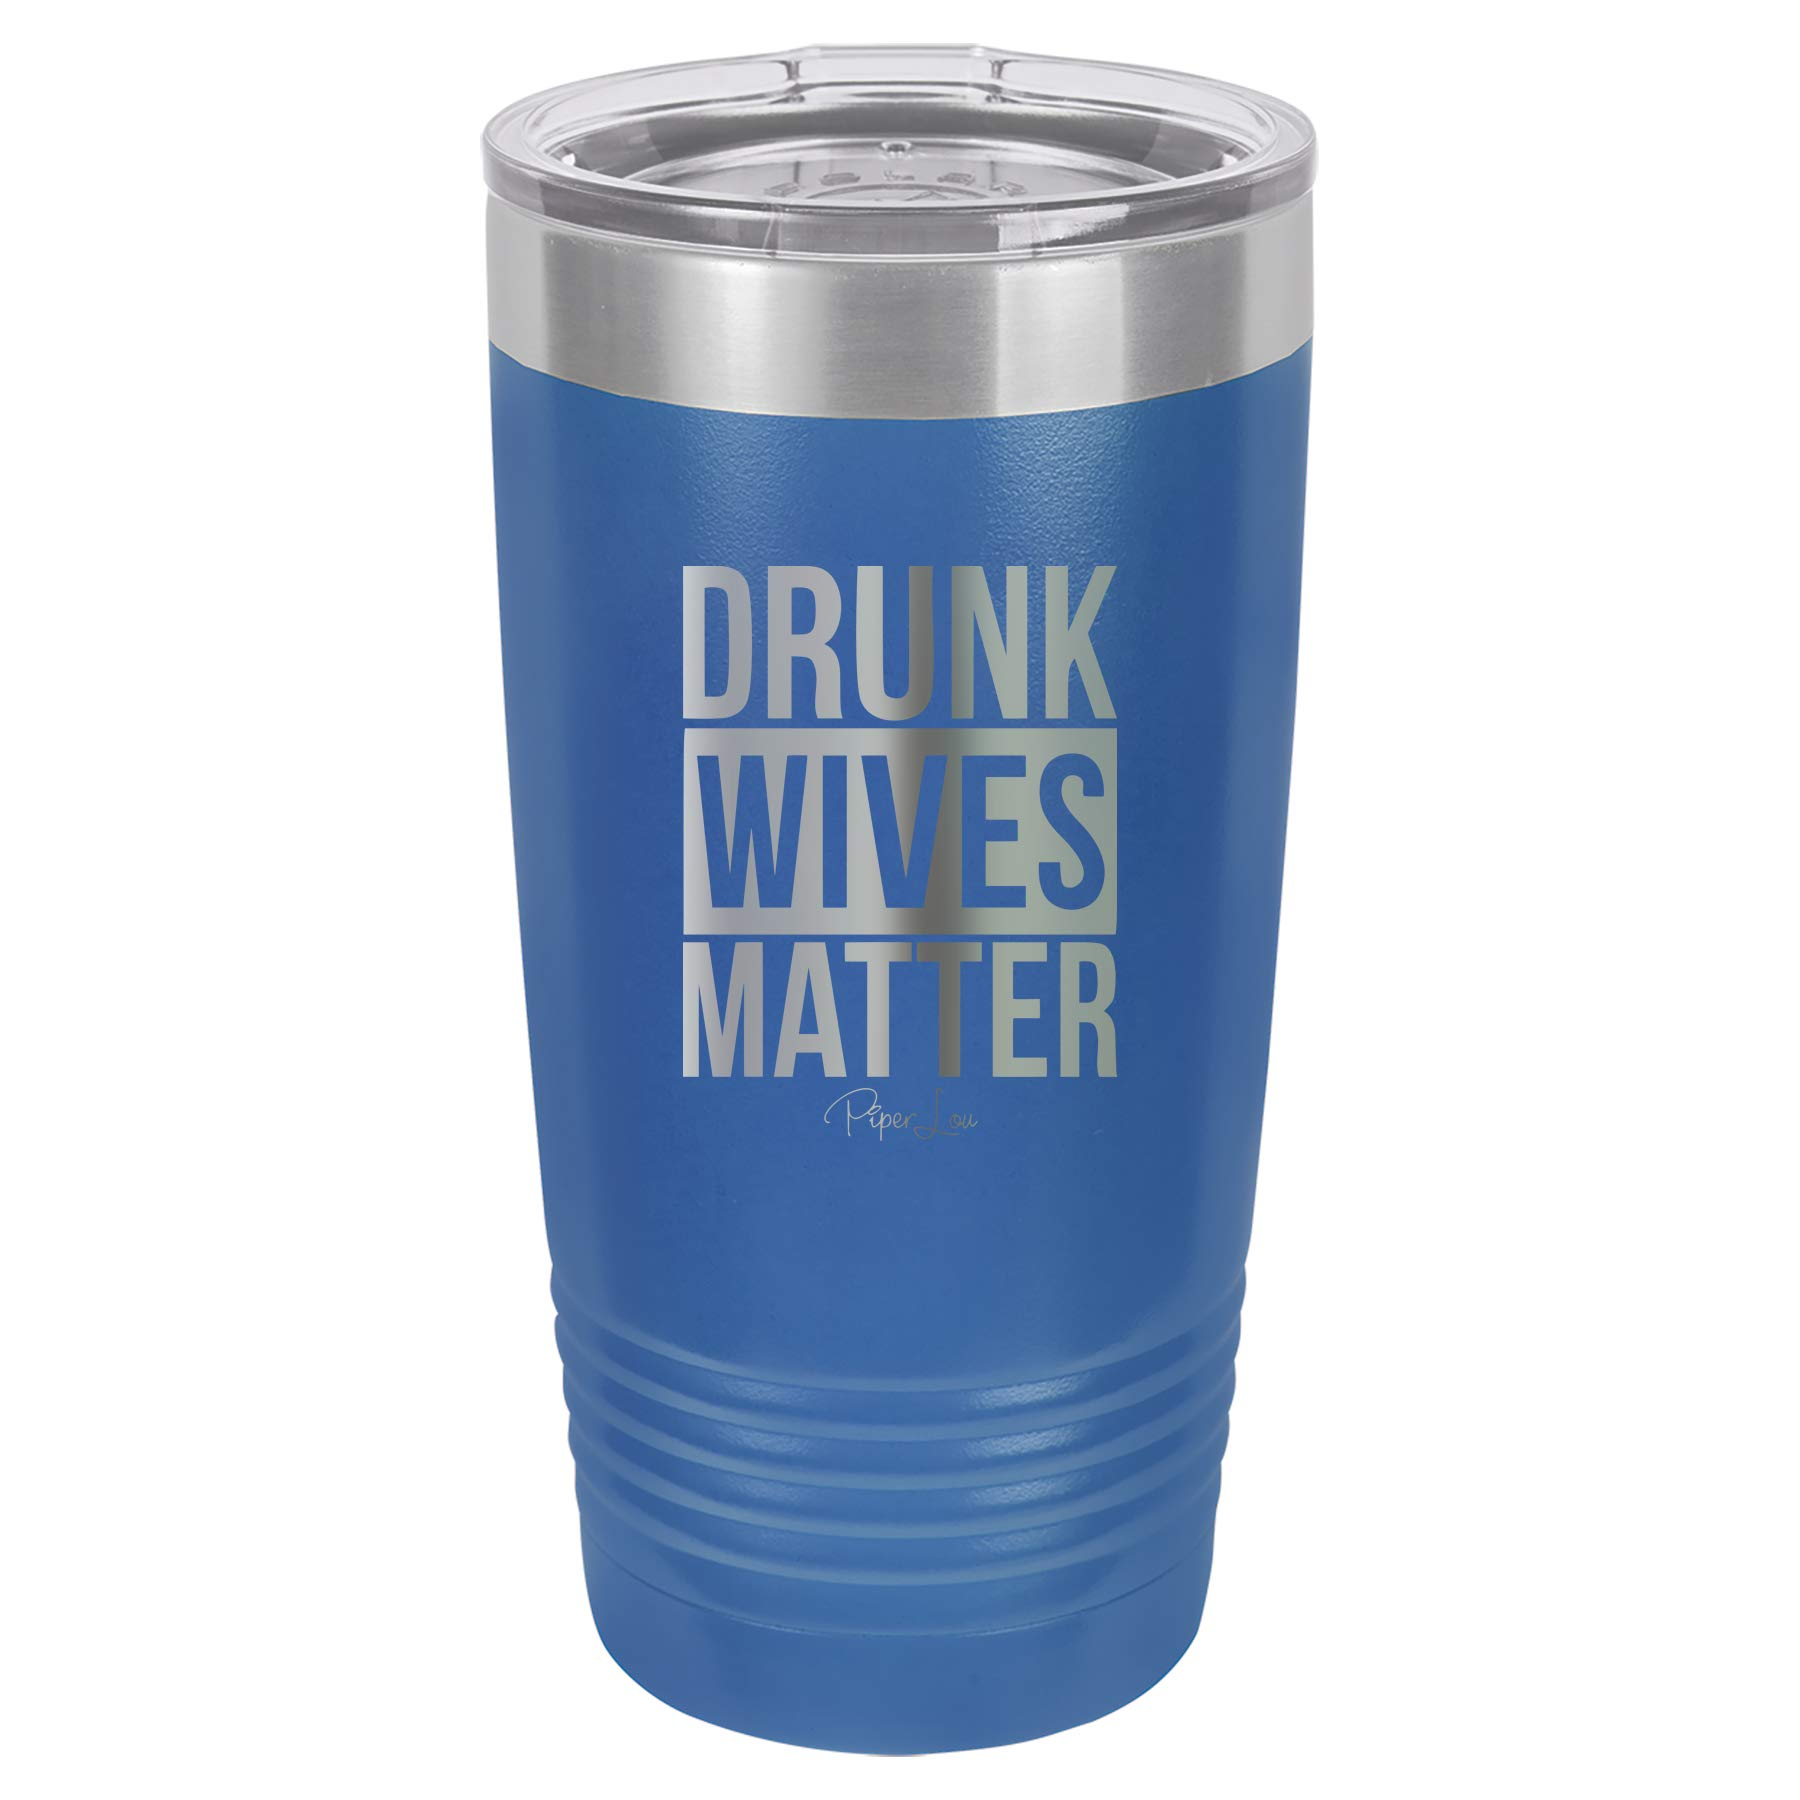 Piper Lou | DRUNK WIVES MATTER, Stainless Steel Insulated Tumbler with Lid - Blue | 20 Oz.